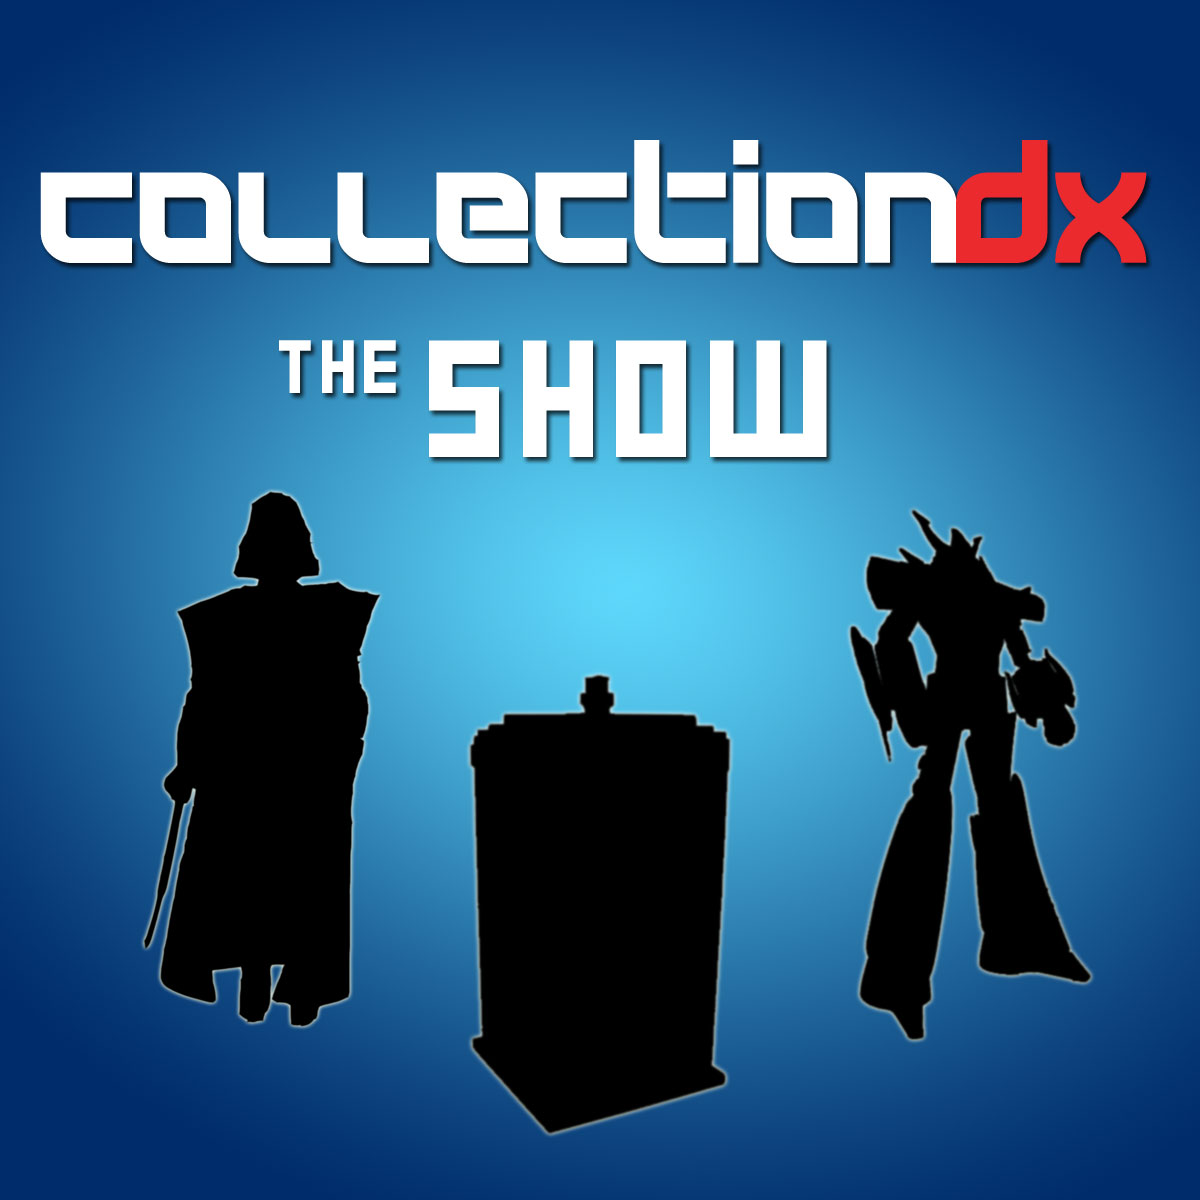 CollectionDX